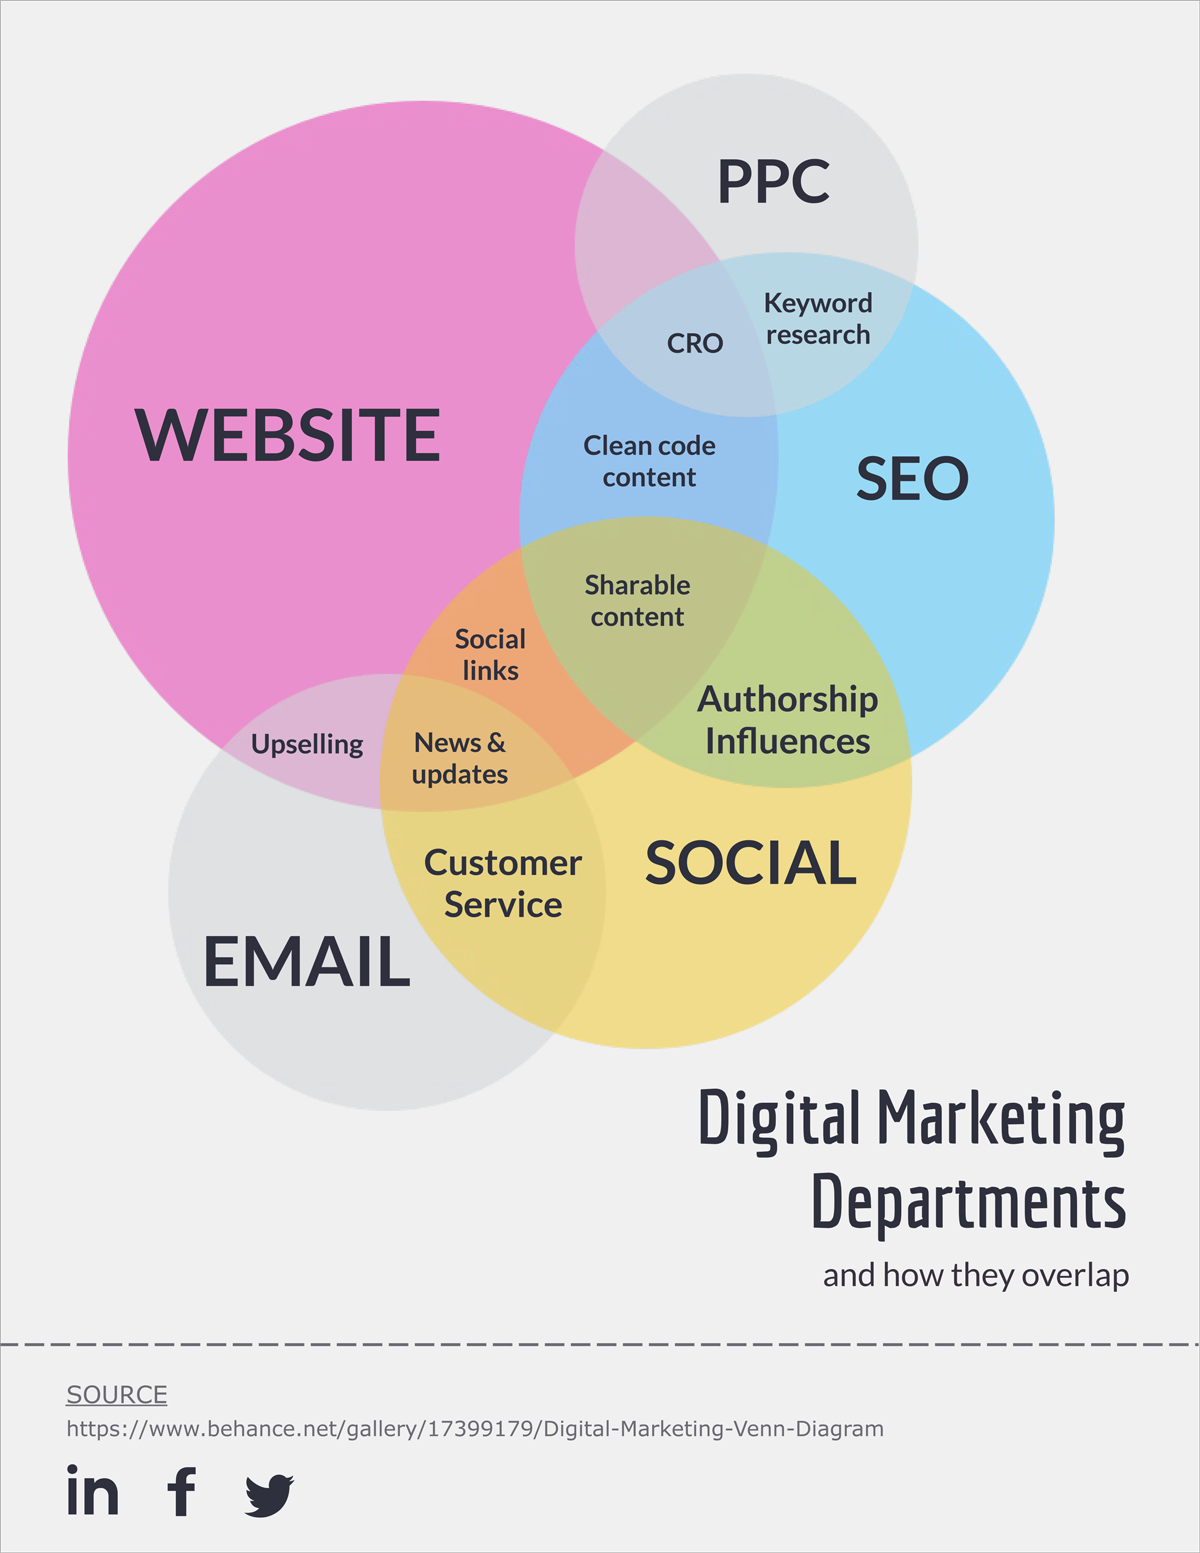 Digital marketing departments venn diagram made in visme digital marketing departments venn diagram made in visme pooptronica Image collections